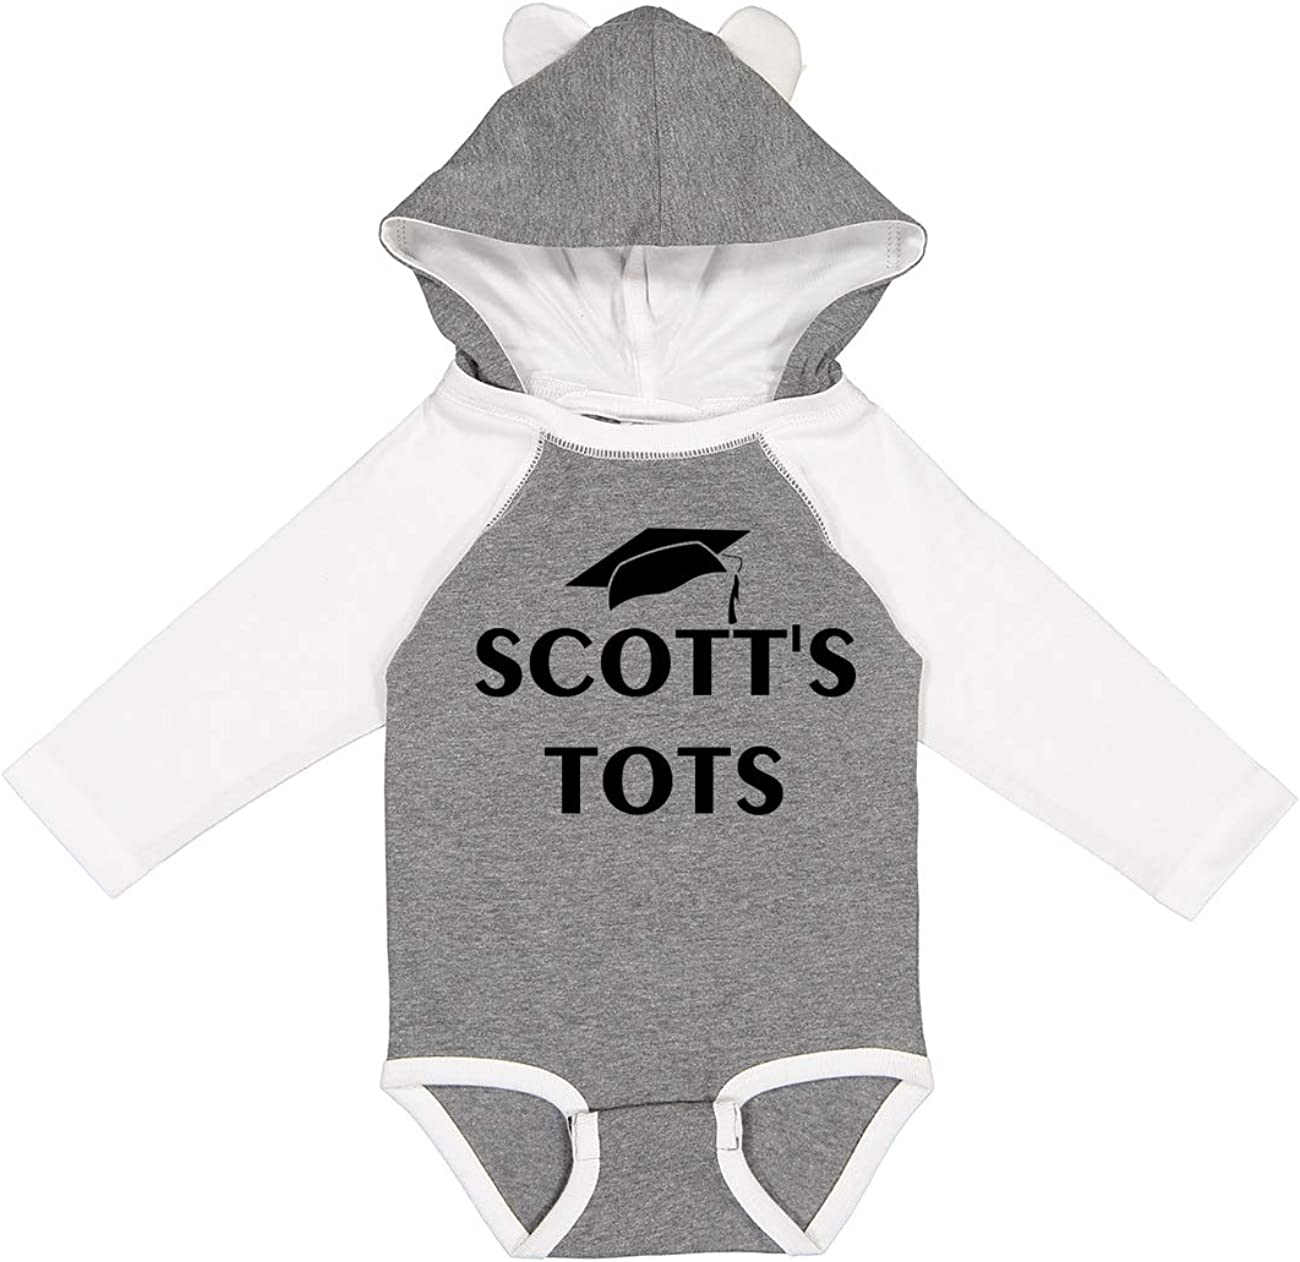 The Office Scott's Tots Long Sleeve Baby Onesie with Ears